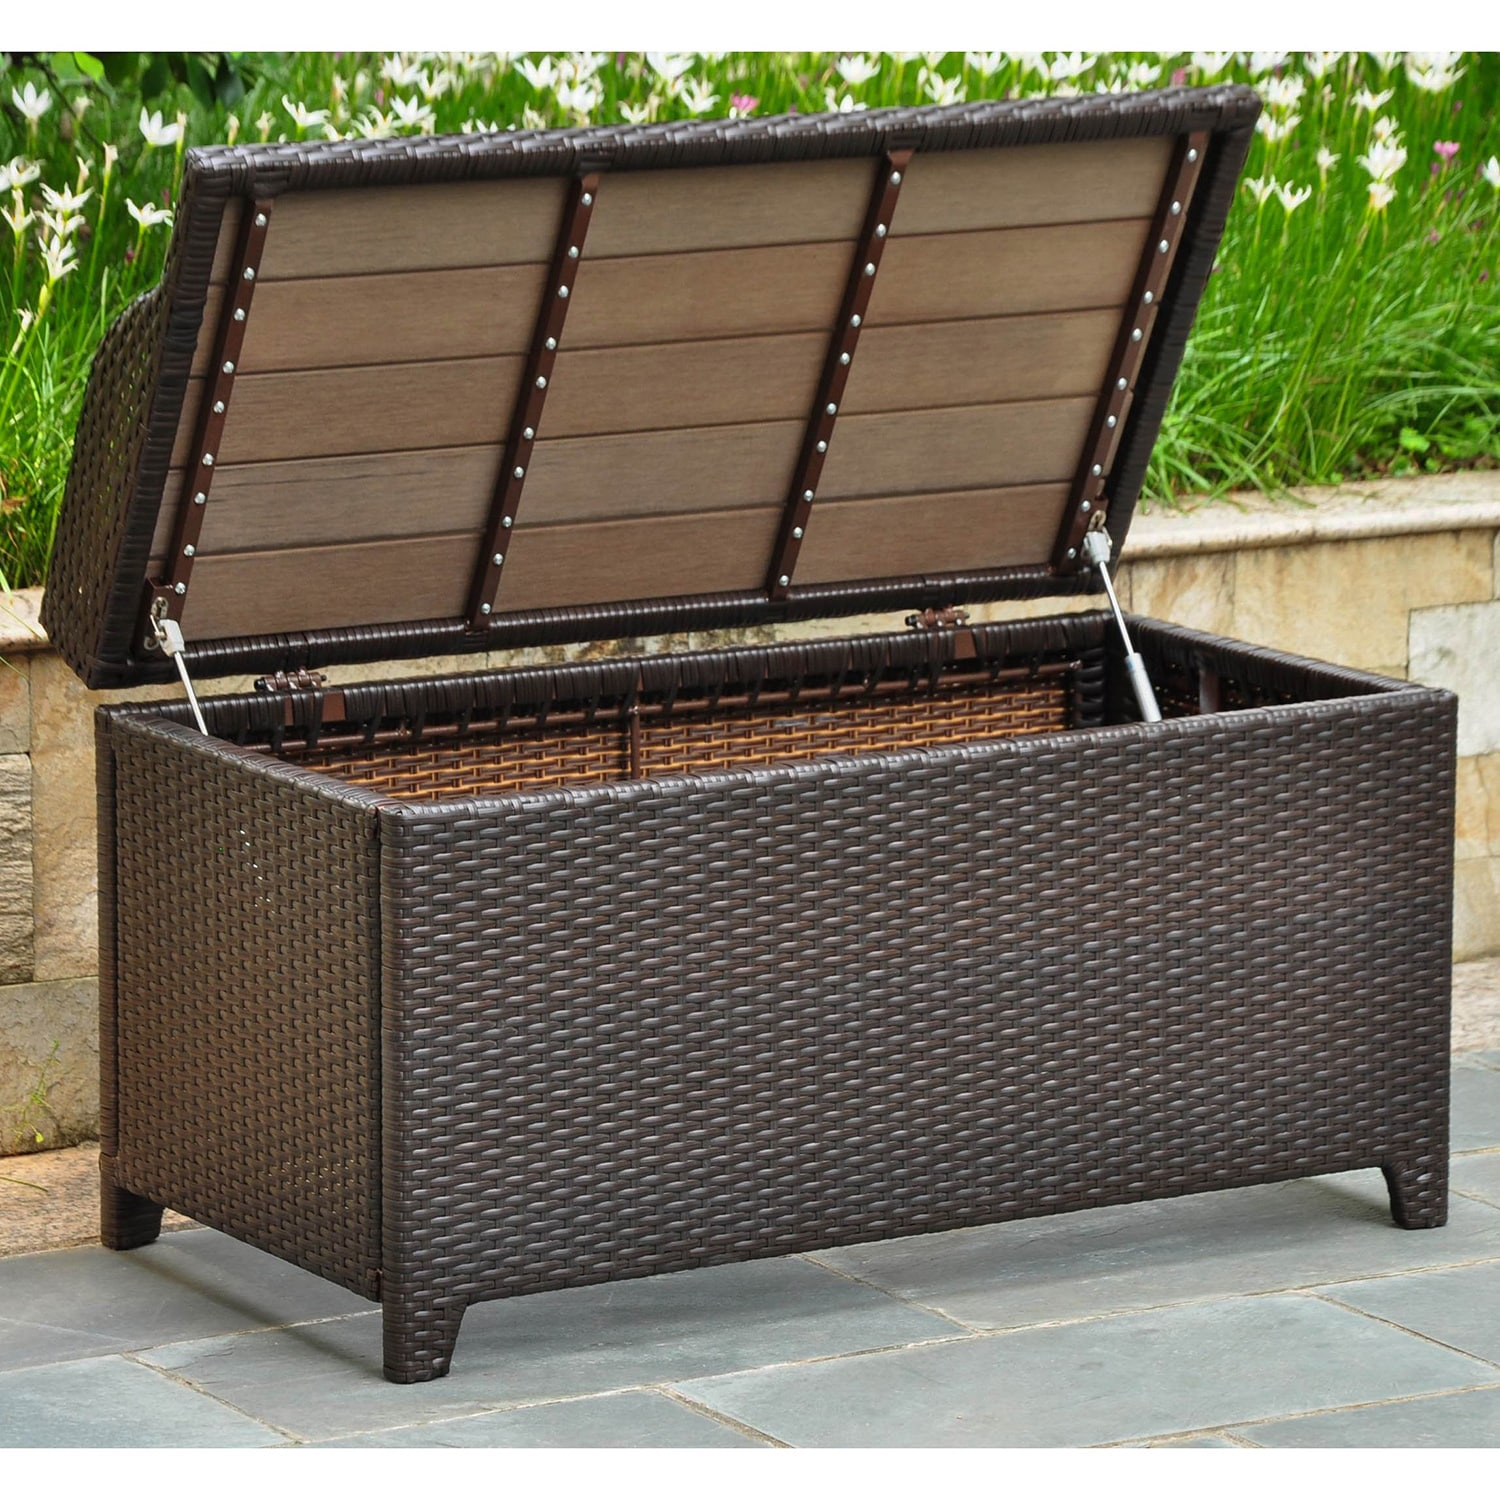 International Caravan Barcelona Resin Wicker Aluminum Outdoor Storage Bench Free Shipping Today 14790392